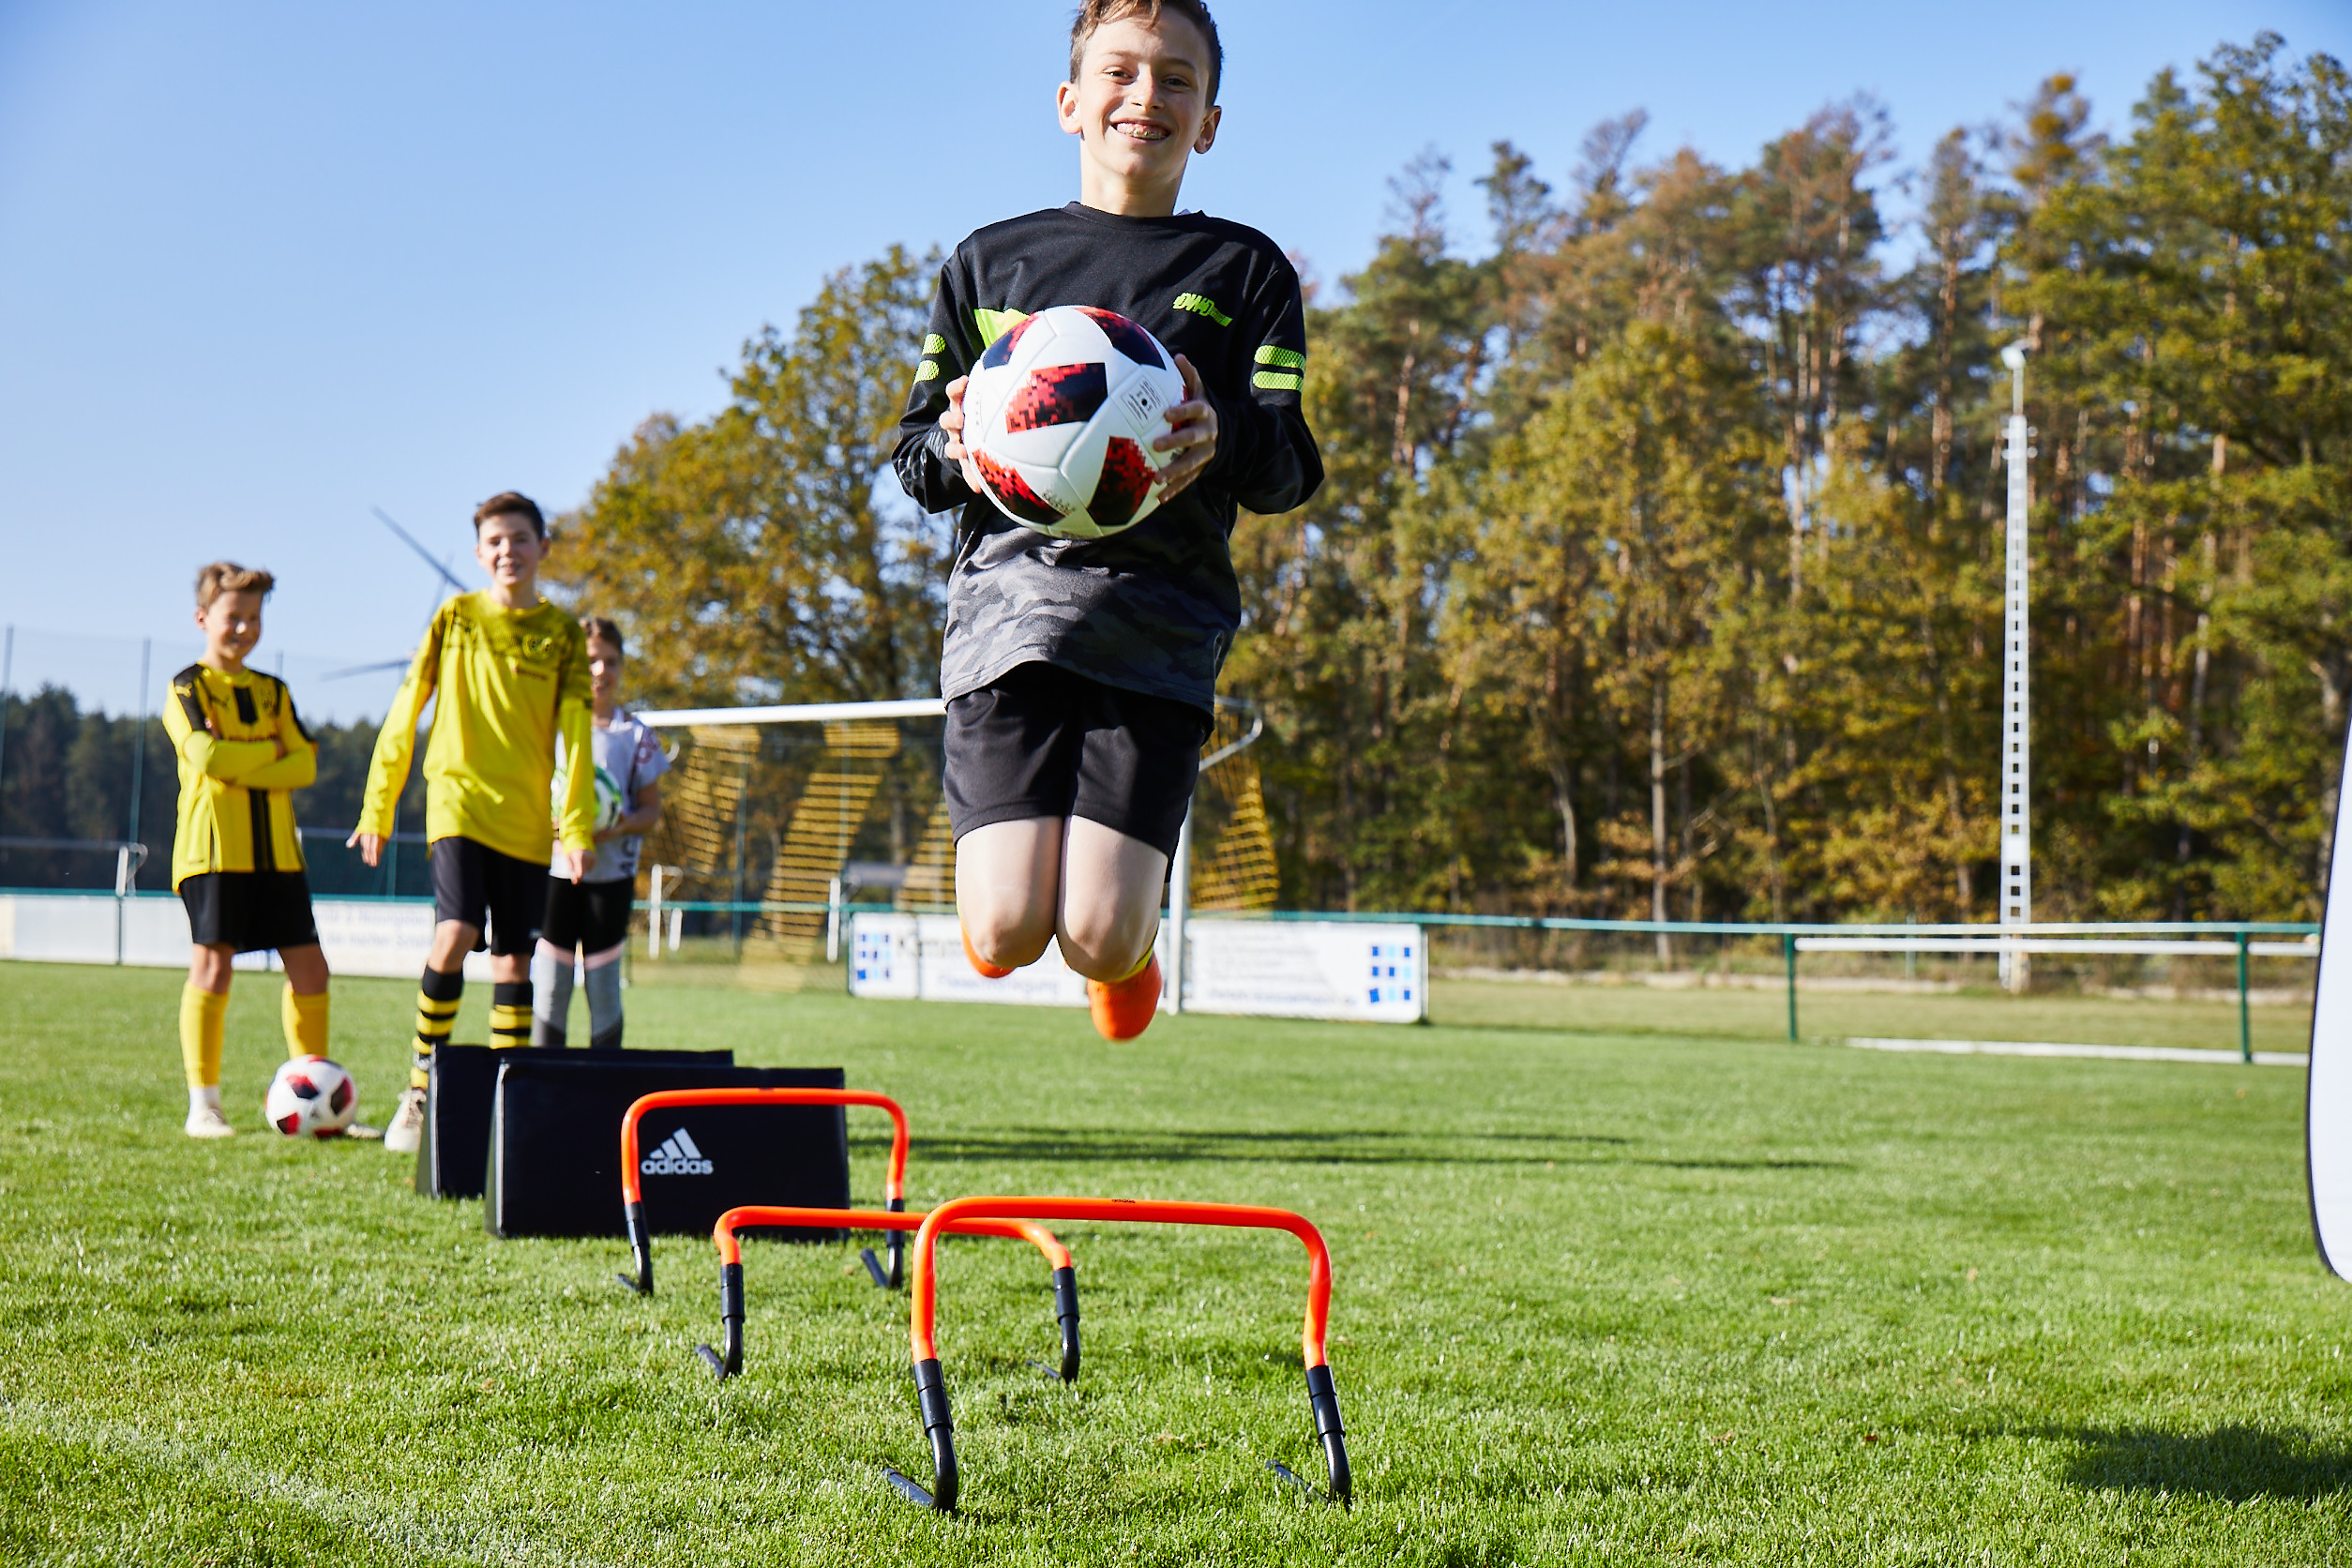 Fussball_Kids_0516